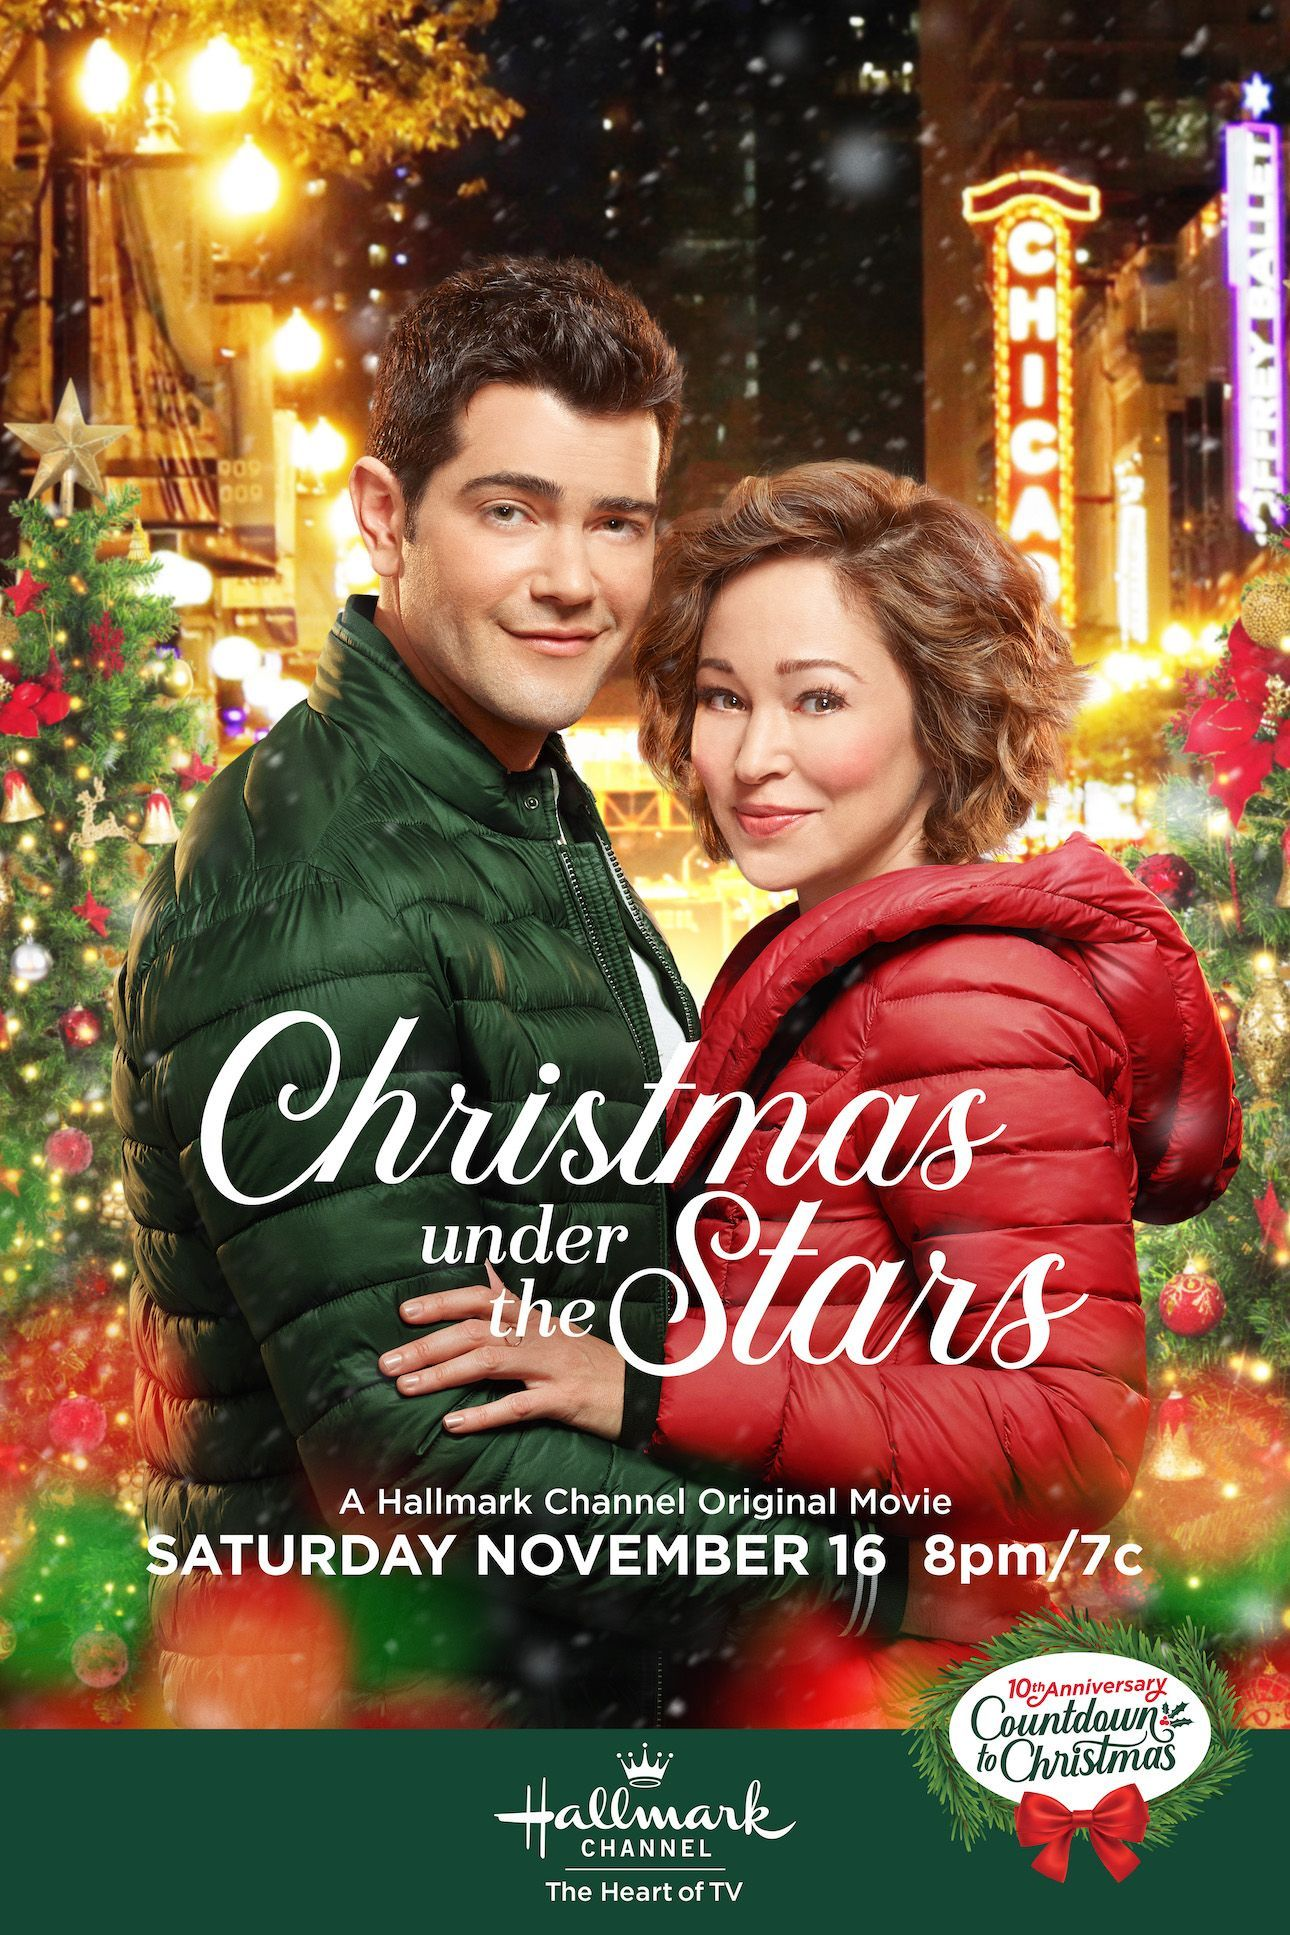 Christmas Under The Stars 2020 Countdown to Christmas reunites Autumn Reeser and Jesse Metcalfe